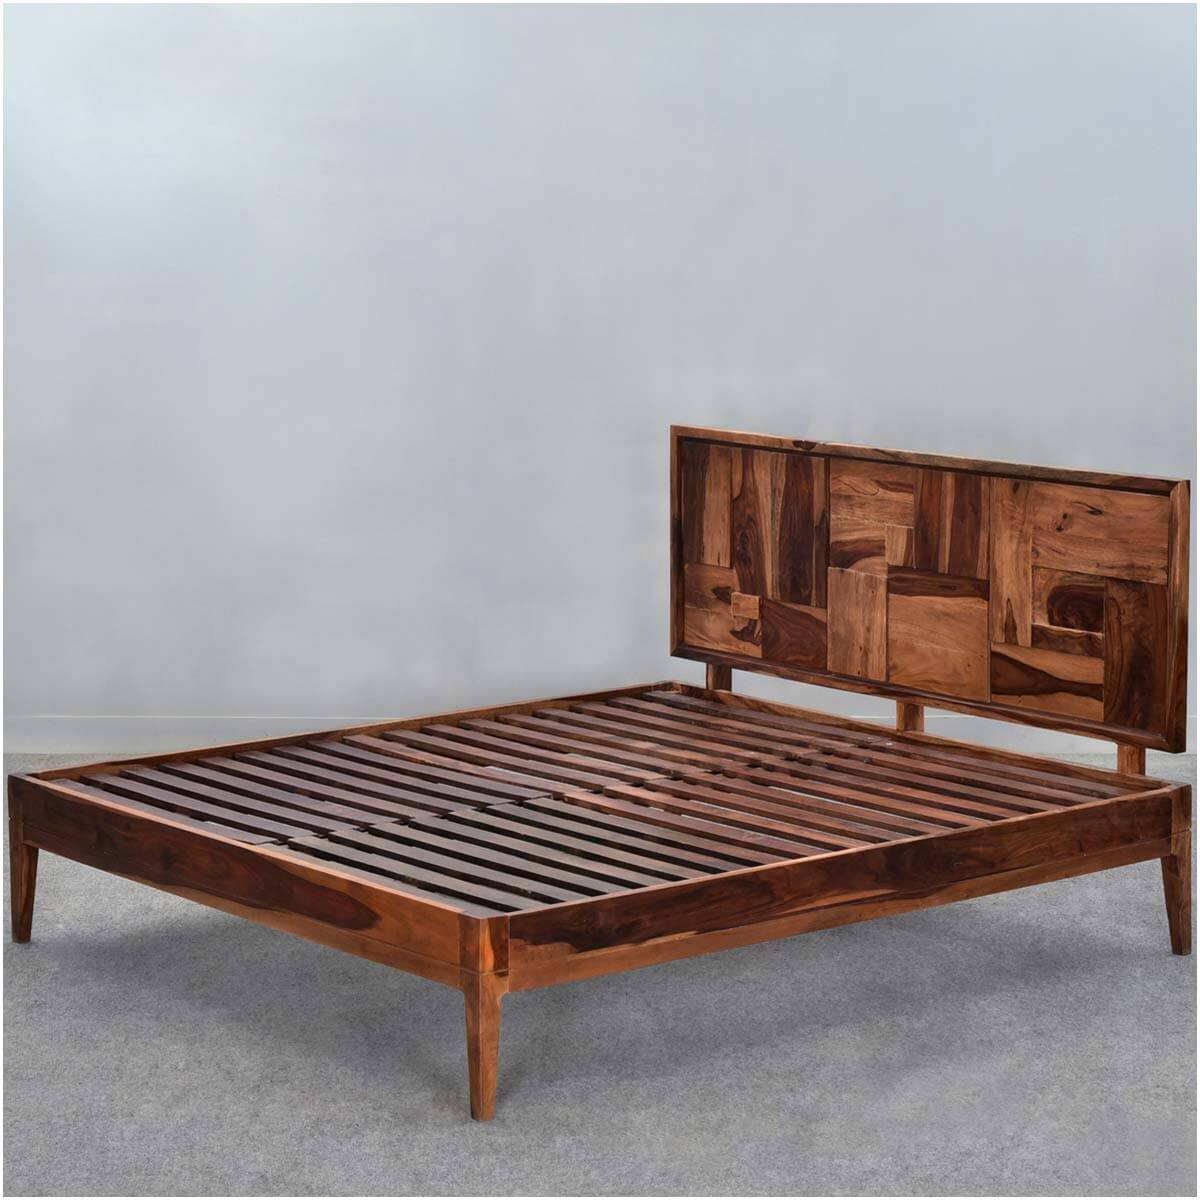 Sunrise modern pioneer solid wood platform bed frame w Wood platform bed